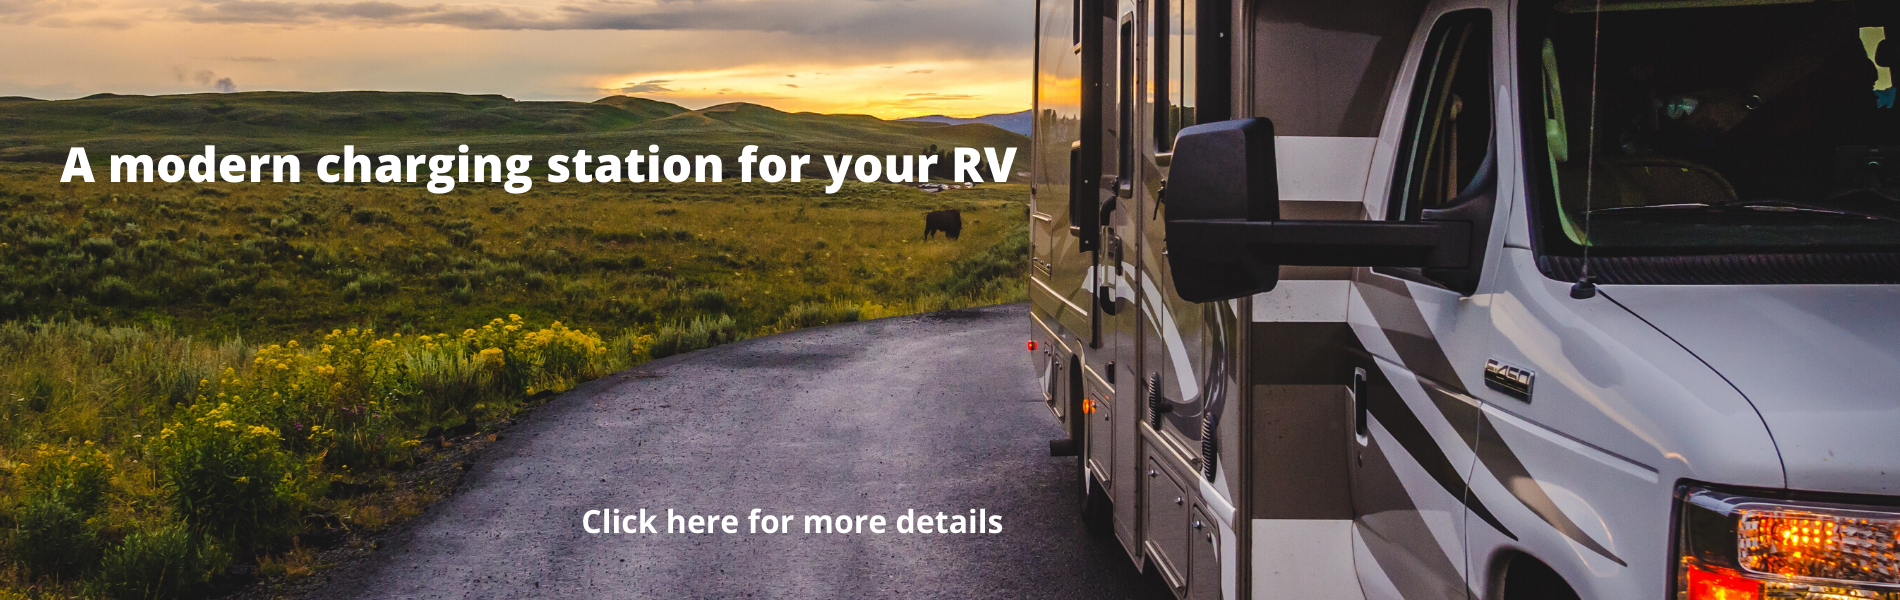 A modern charging station for your RV